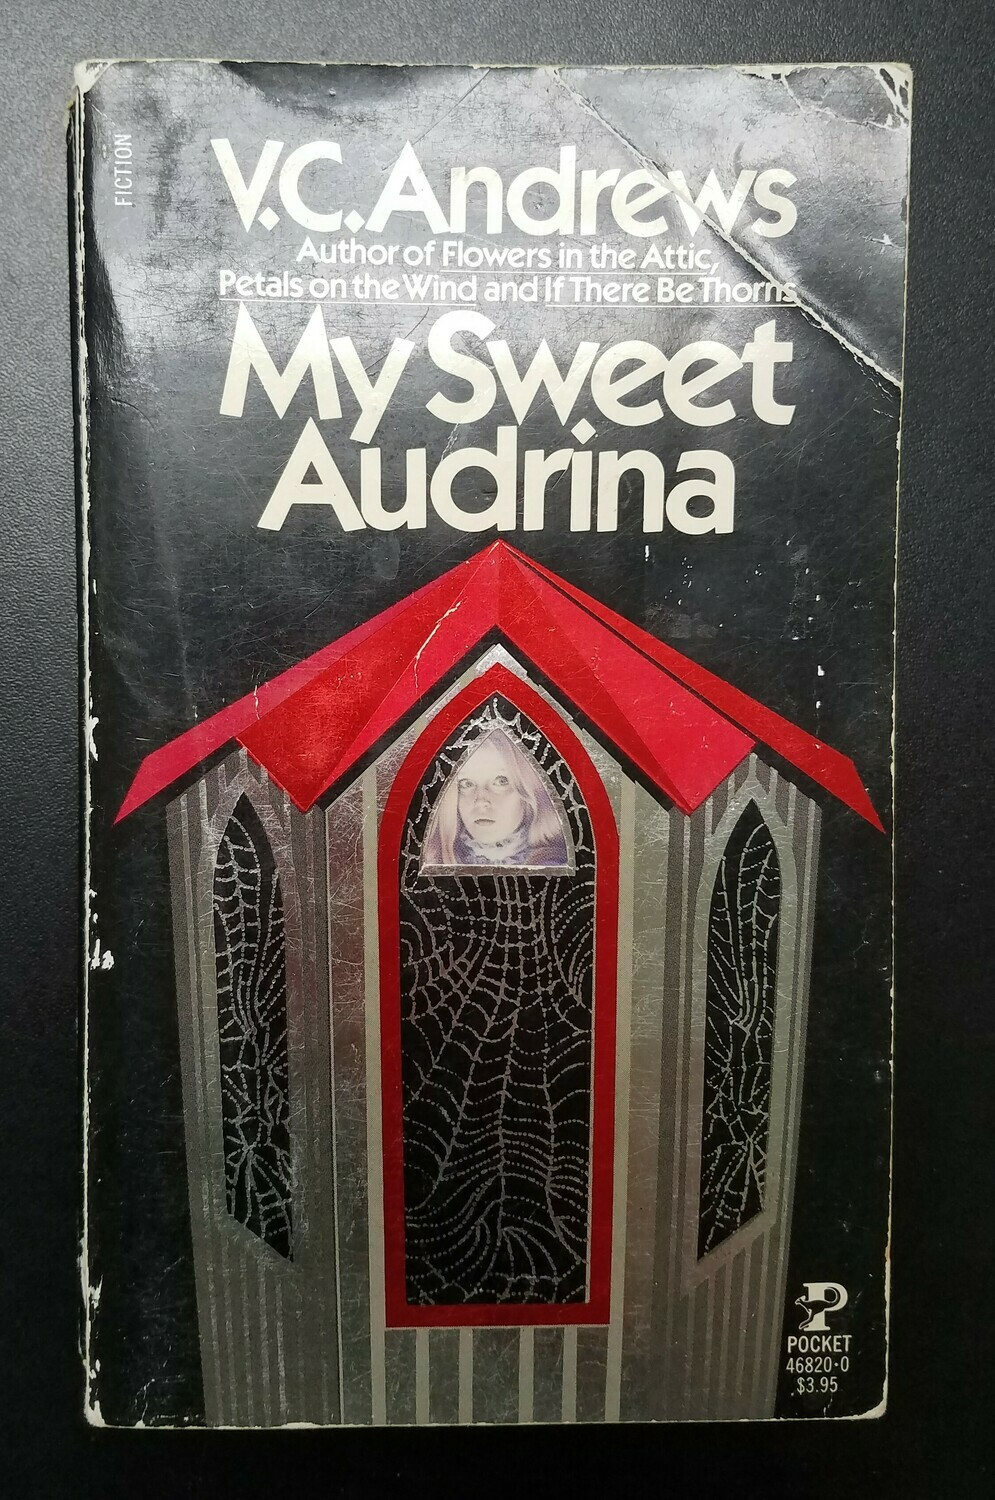 My Sweet Audrina by V.C. Andrews